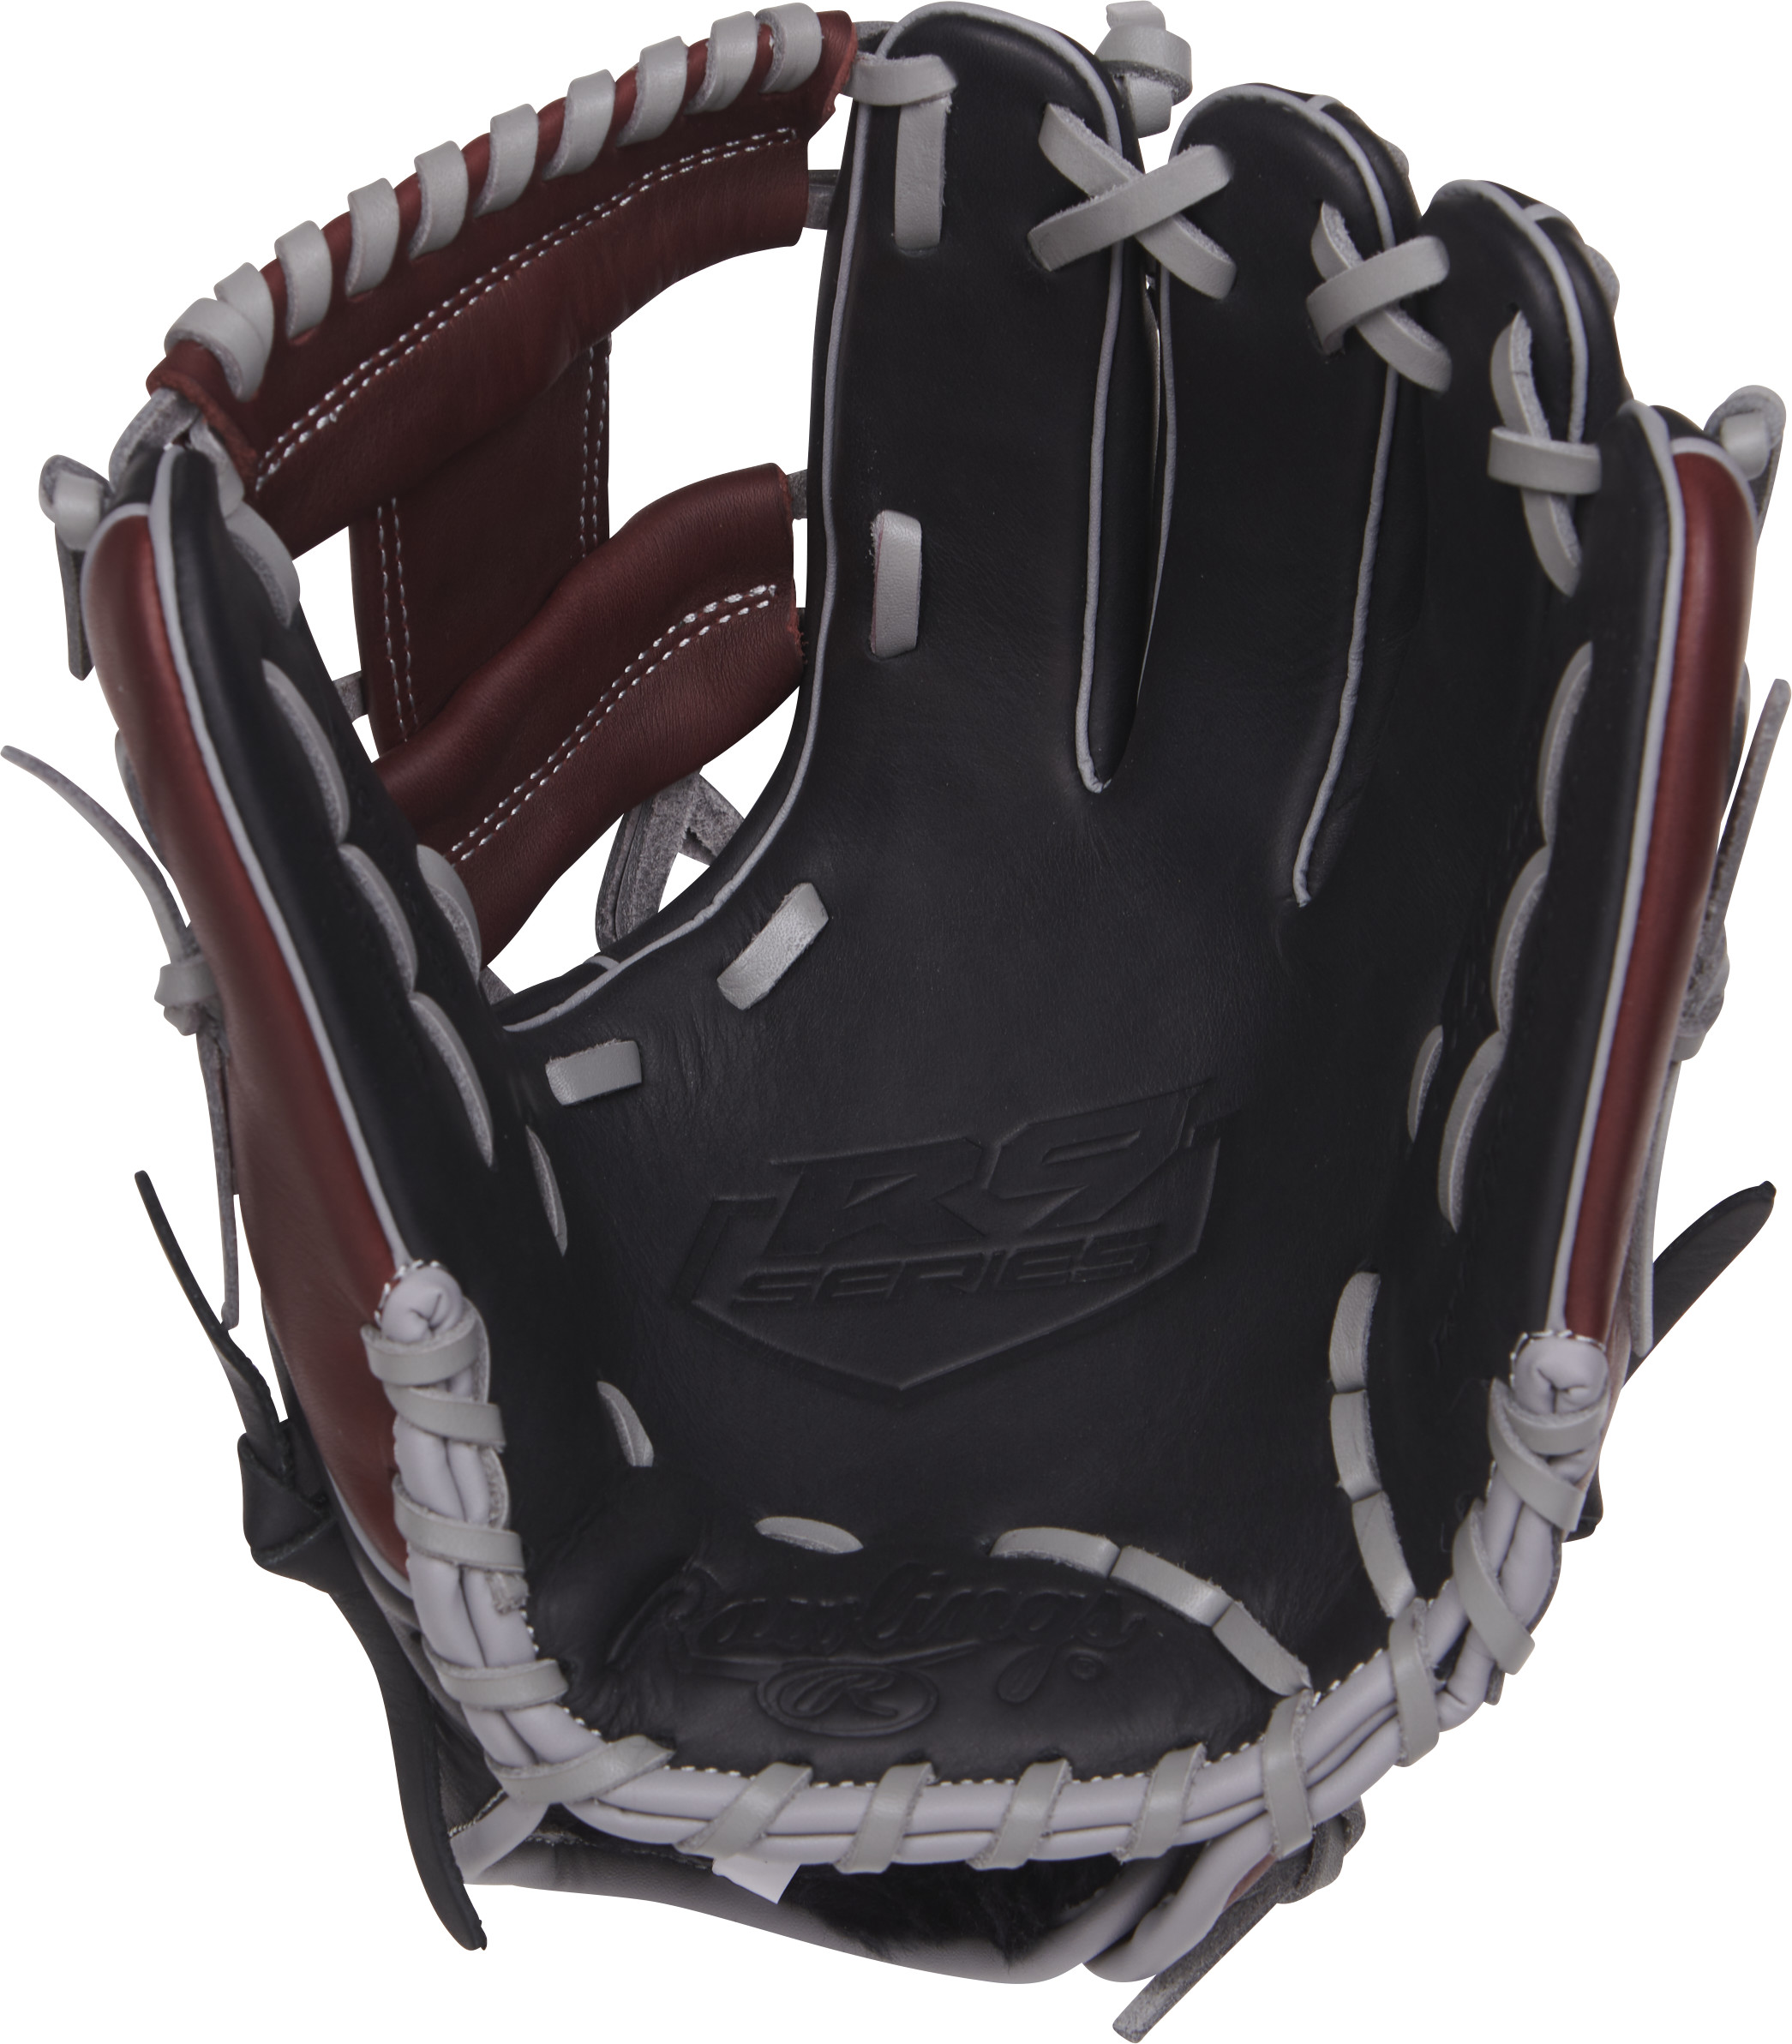 http://www.bestbatdeals.com/images/gloves/rawlings/R9204-2BSG-1.jpg